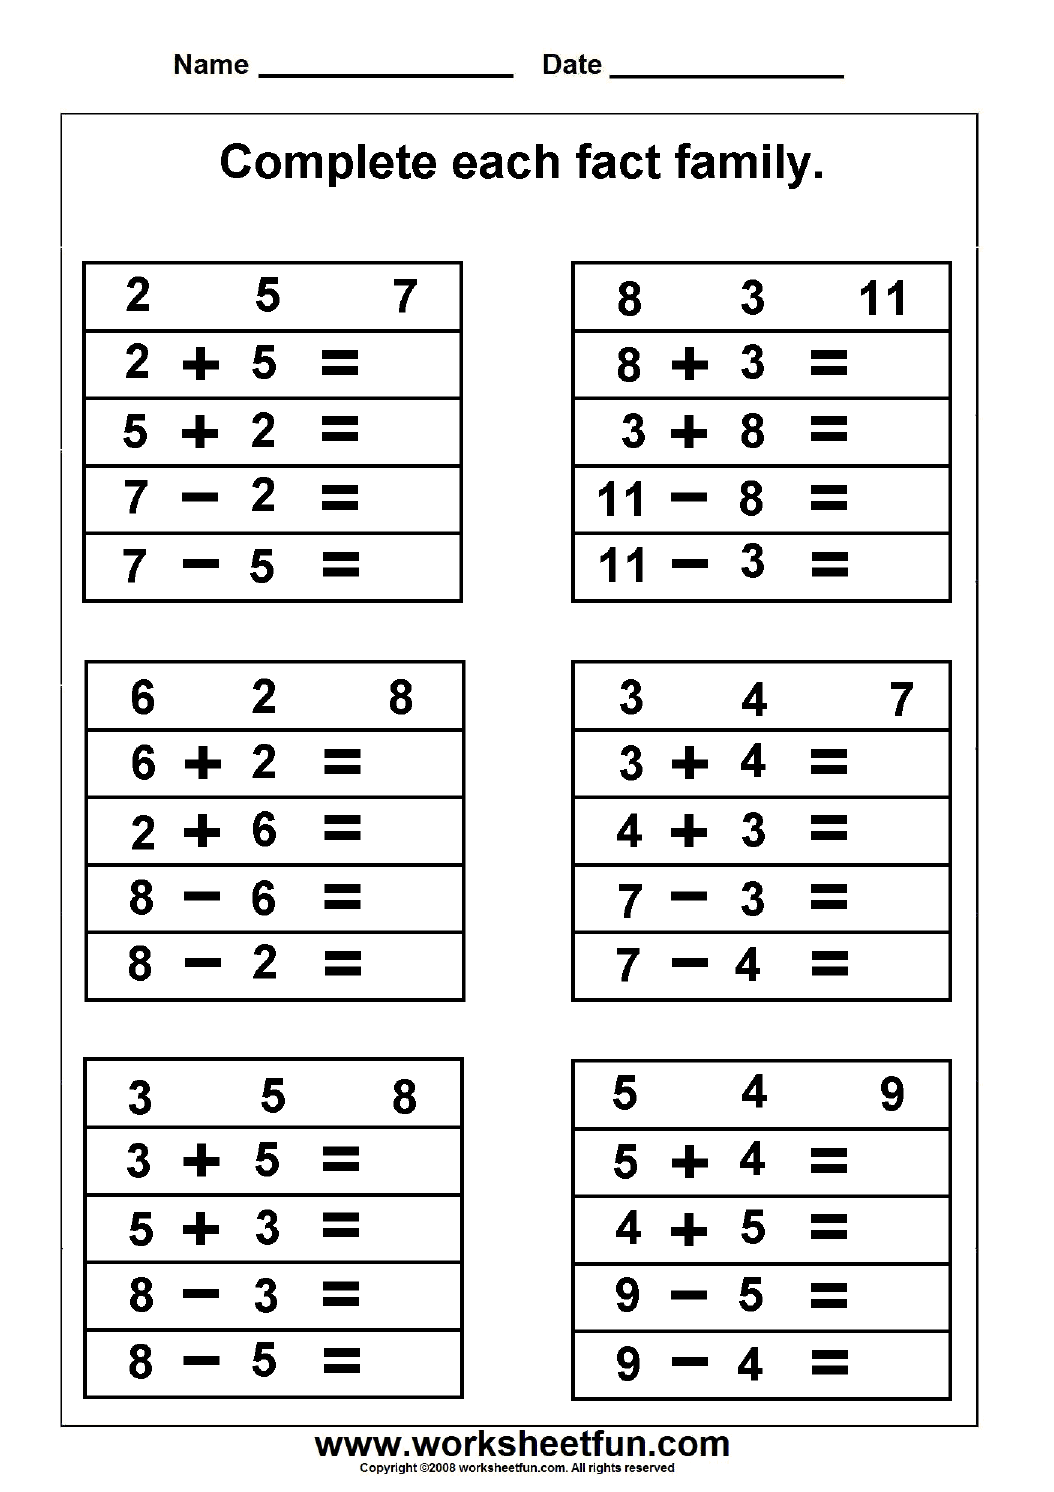 Worksheet Fun Number Chart Along With Multiplication Worksheet With Repeated Addition Along With